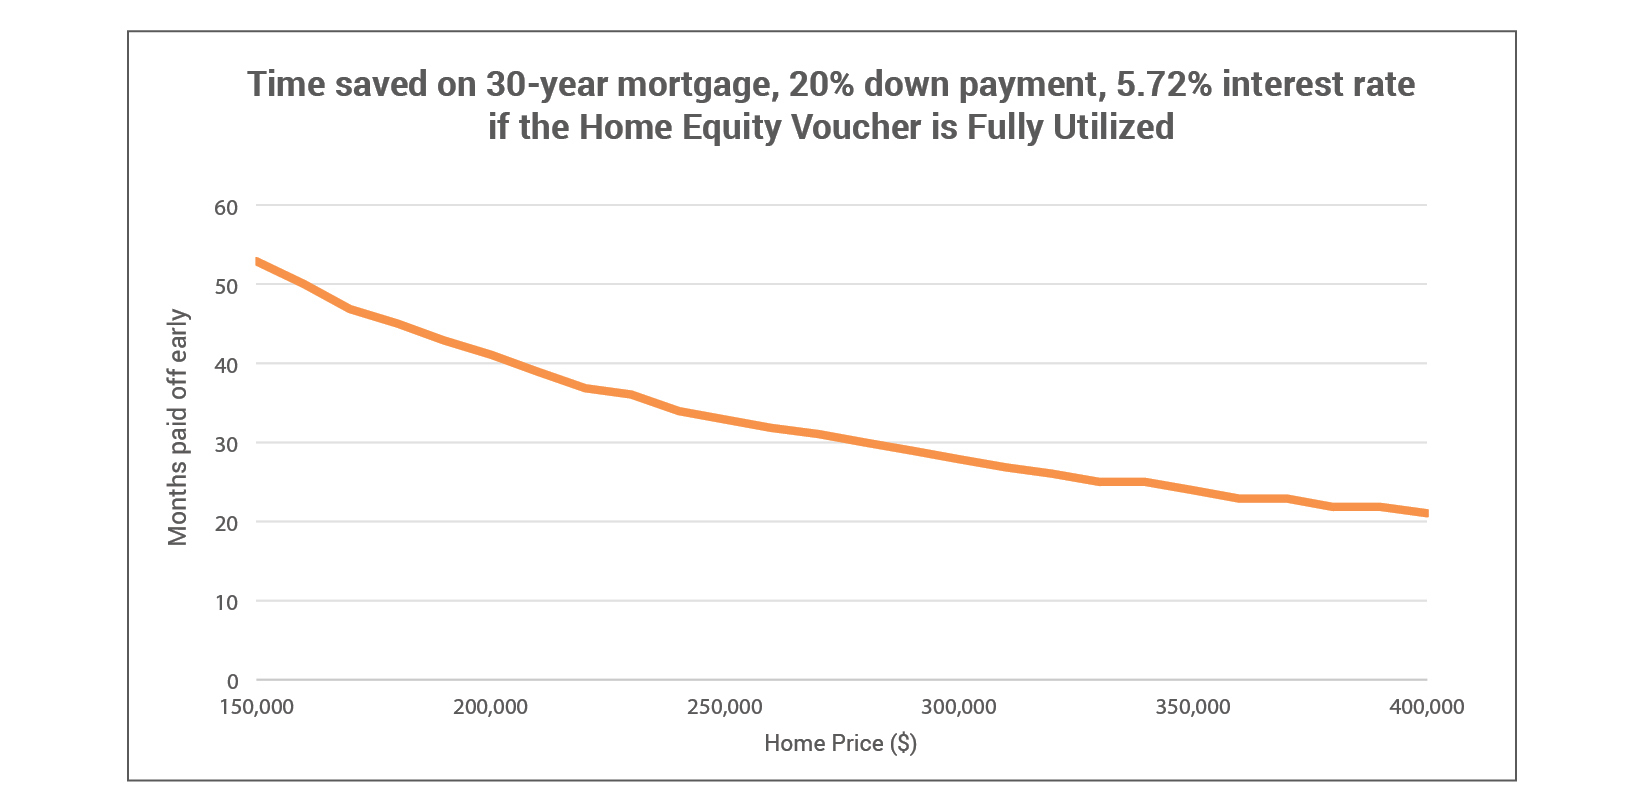 Time Saved on 30 Year Mortgage